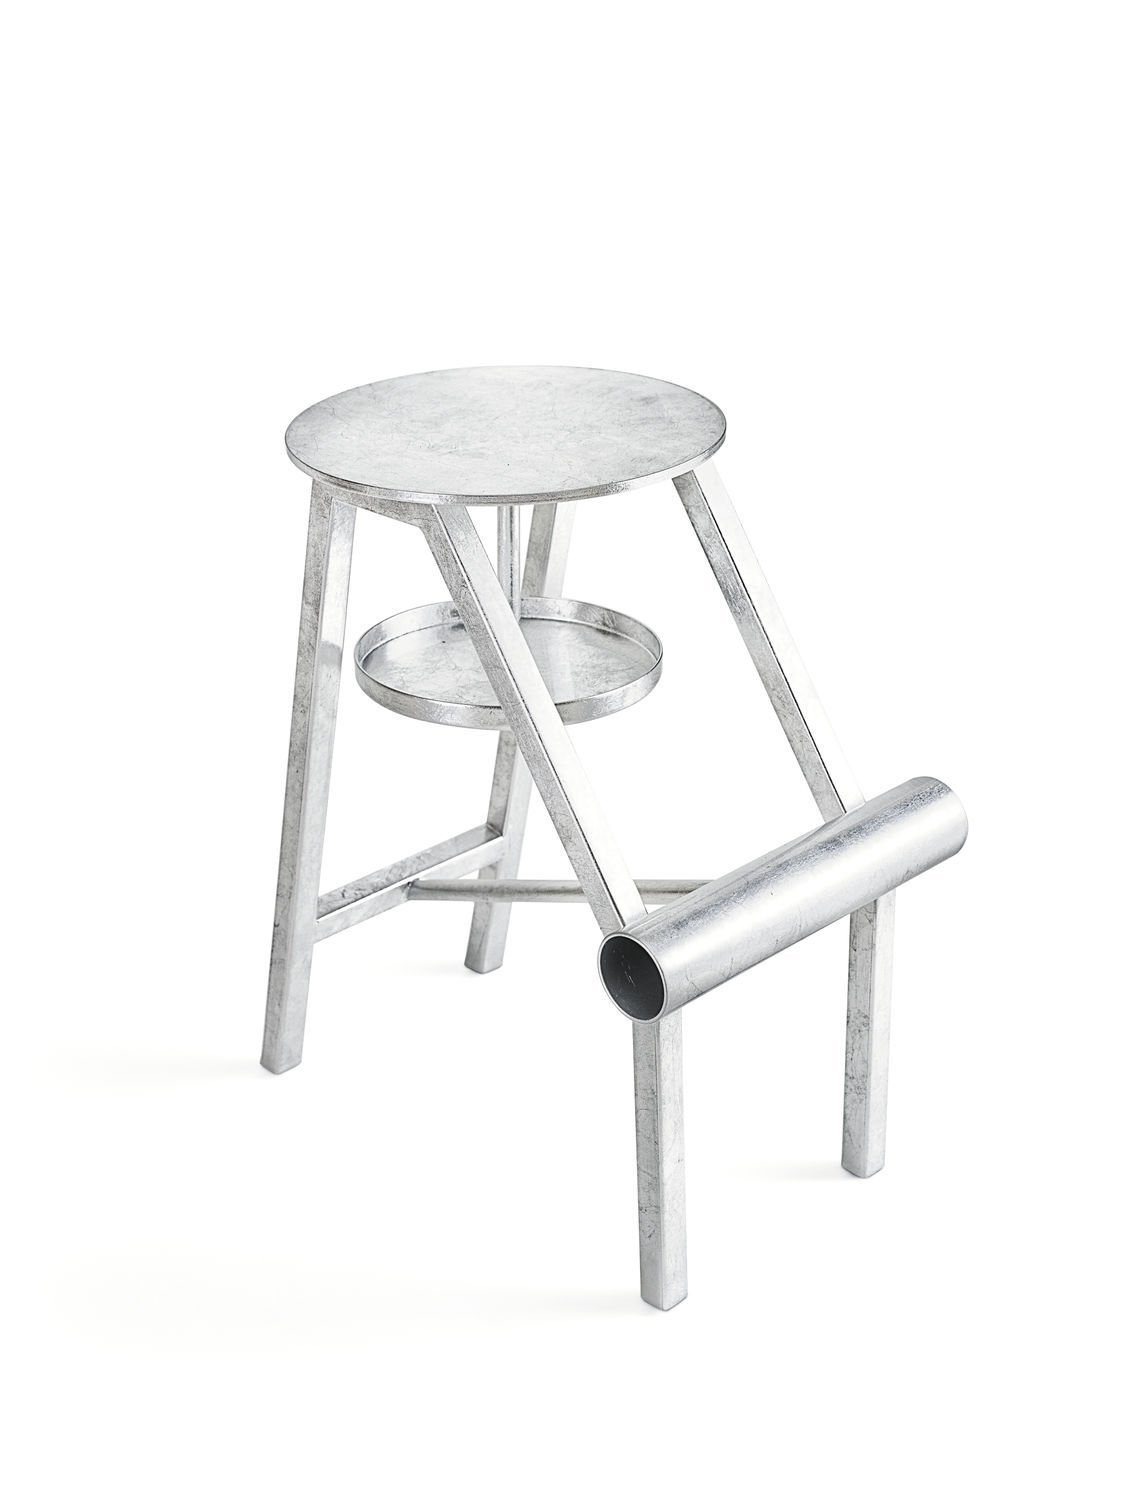 Stool Opinion Ciatti Shoe Silver Leaf